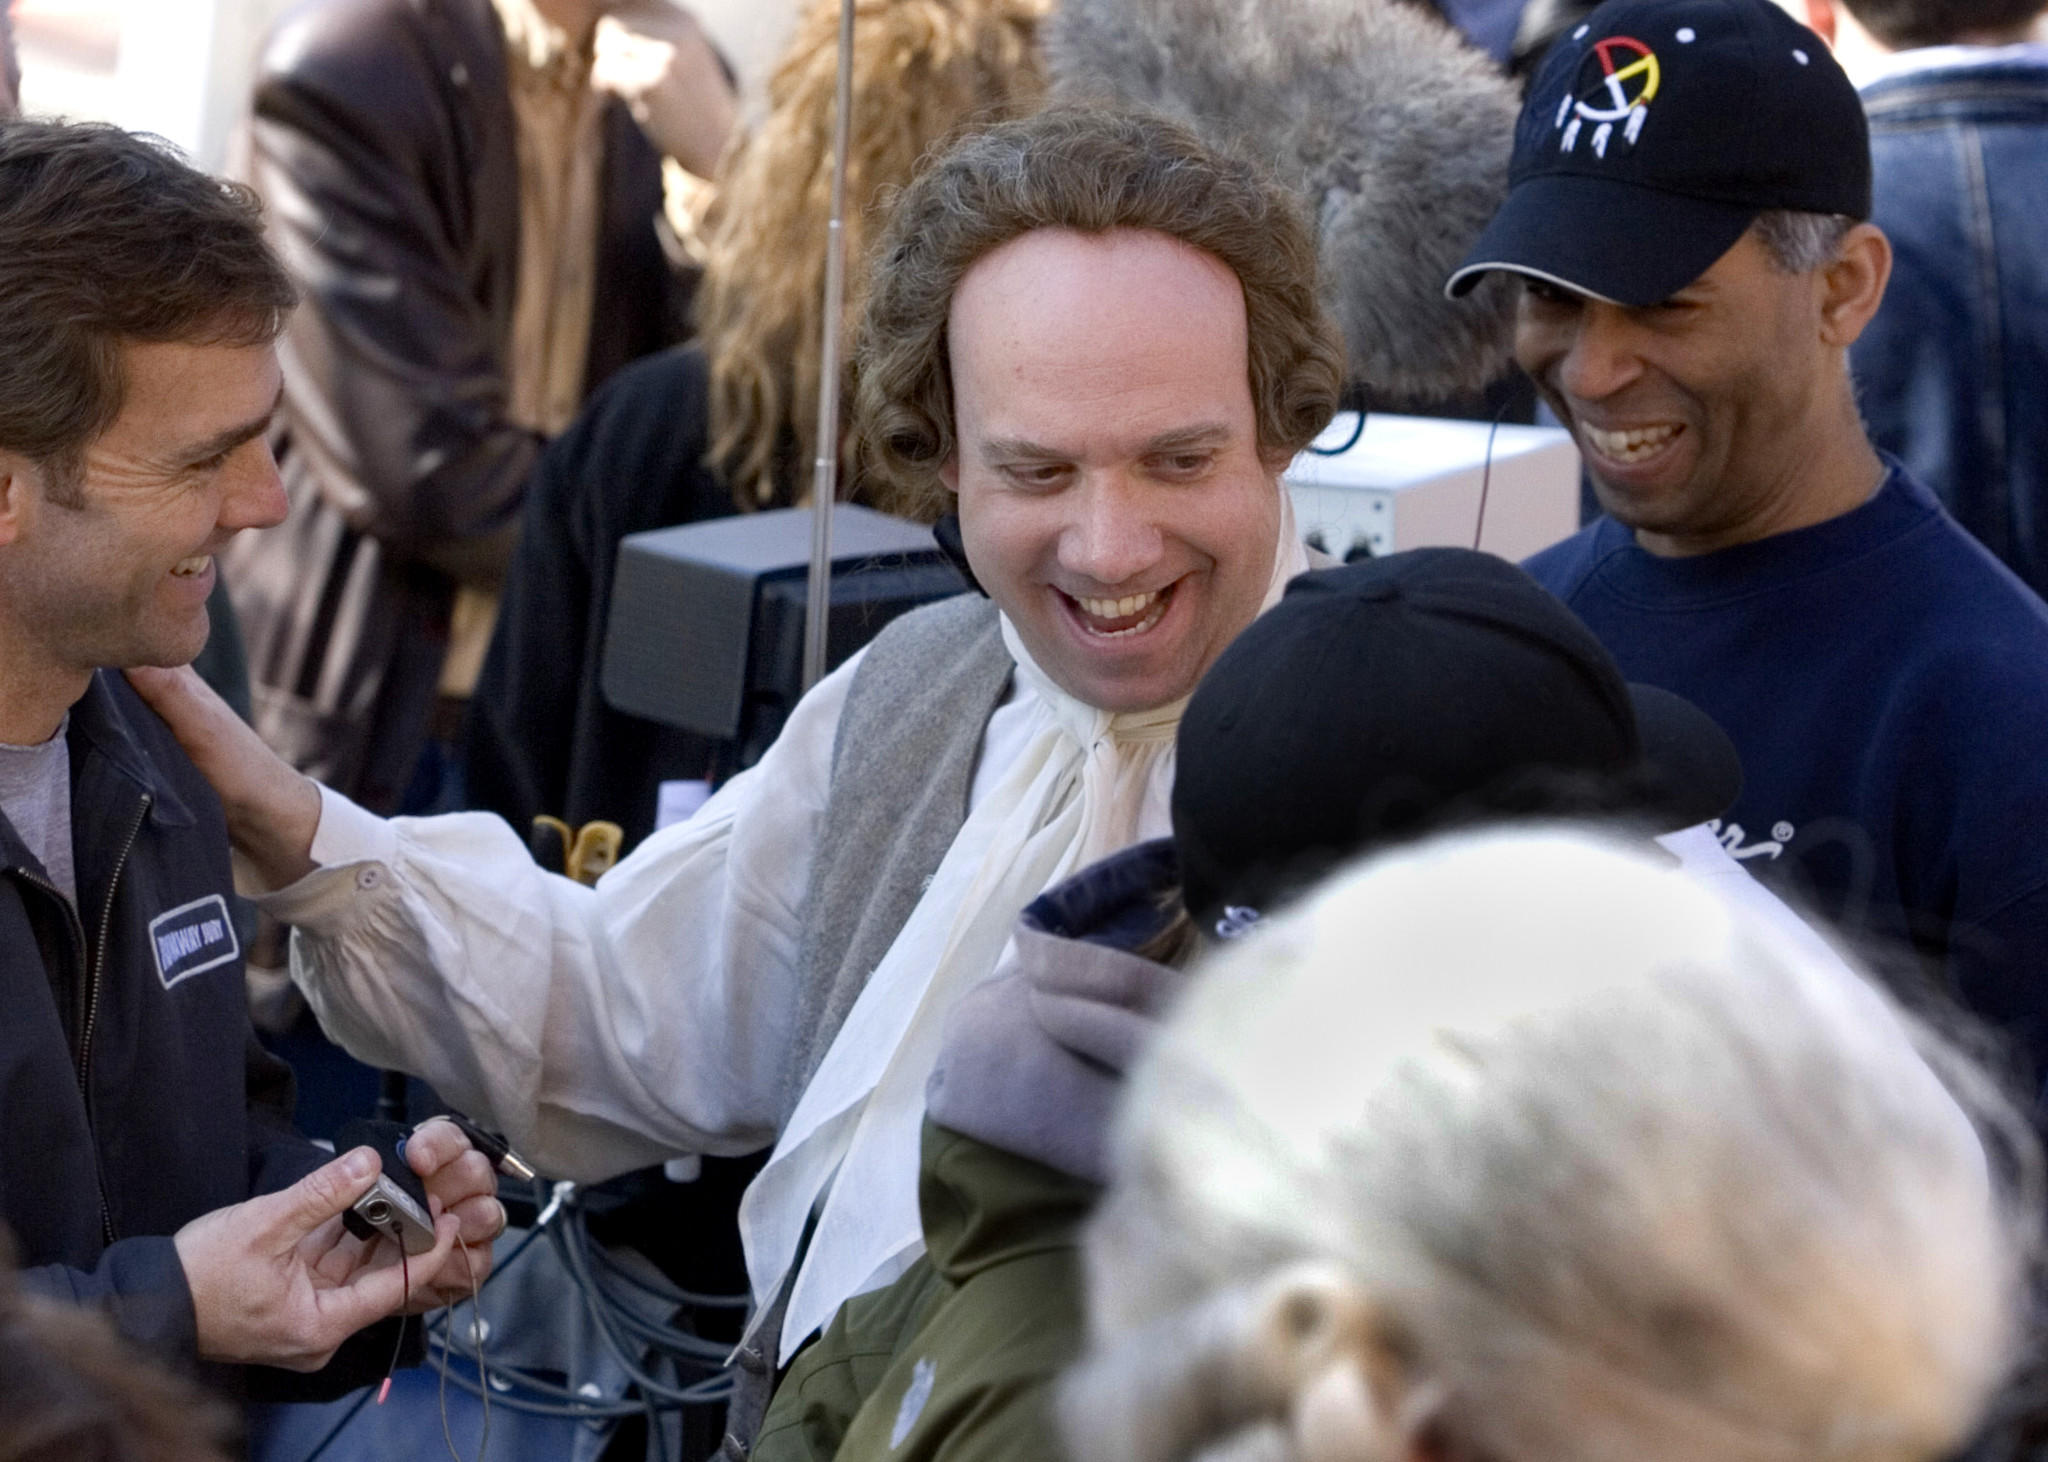 """John Adams,"" an HBO miniseries, filmed in Colonial Williamsburg in 2007. Actor Paul Giamatti who portrayed Adams arrived on the set in this file image."